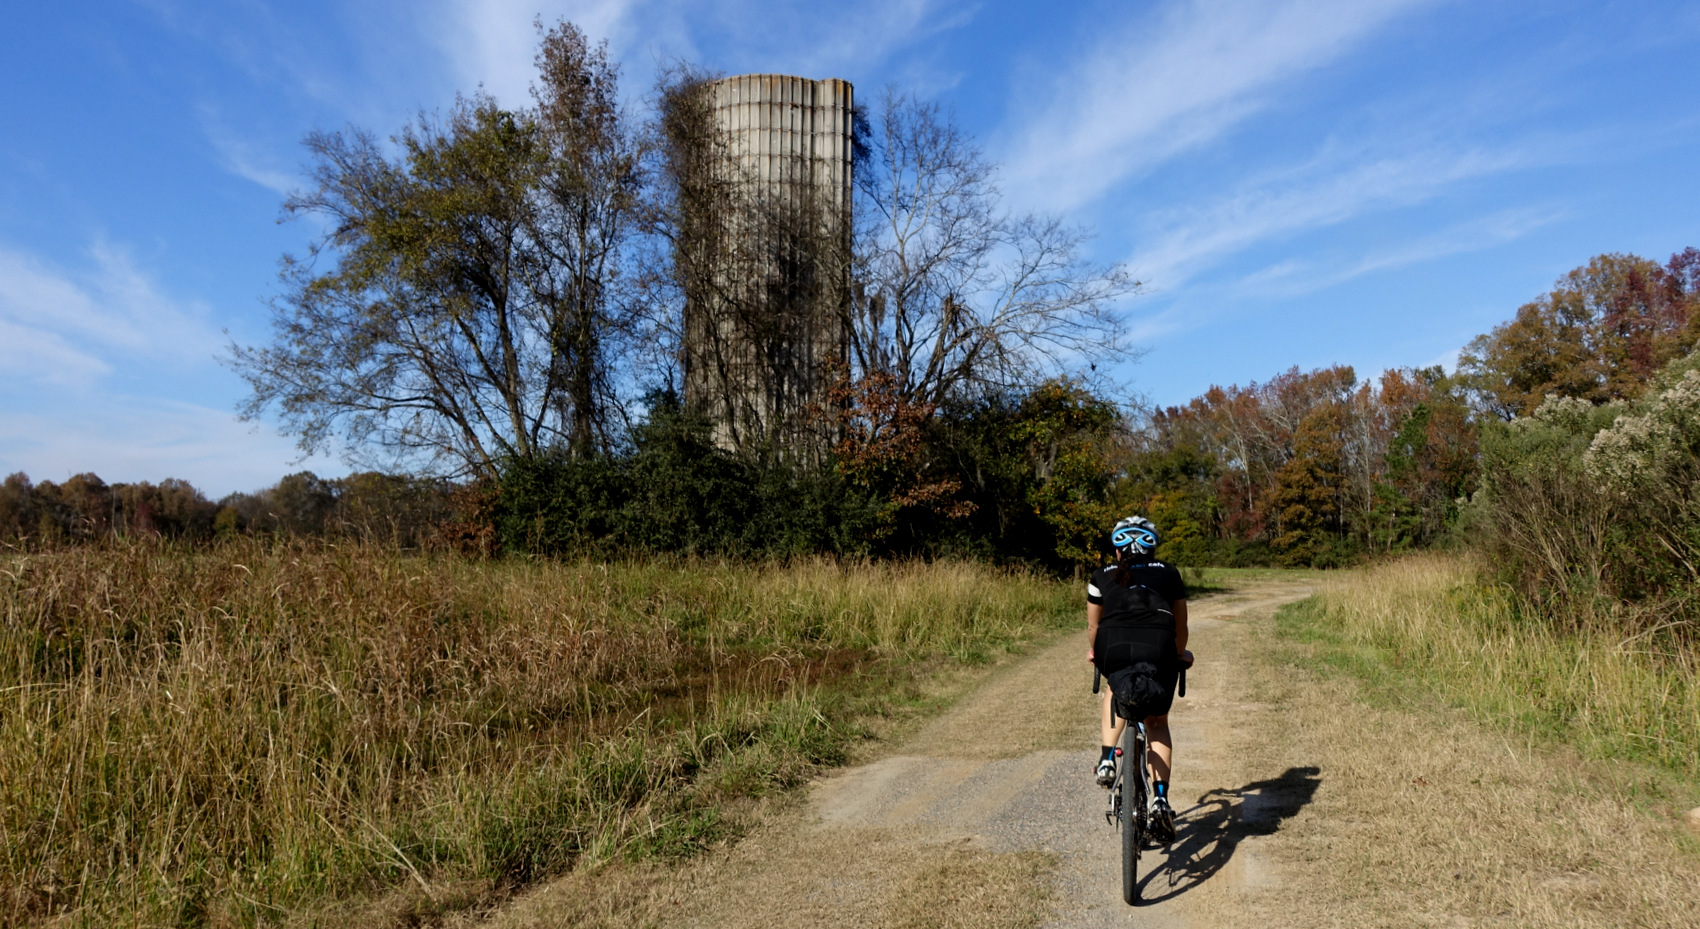 Here's one of the transition points between stunning singletrack to more dirt road. An abandoned silo stands watch over our group.